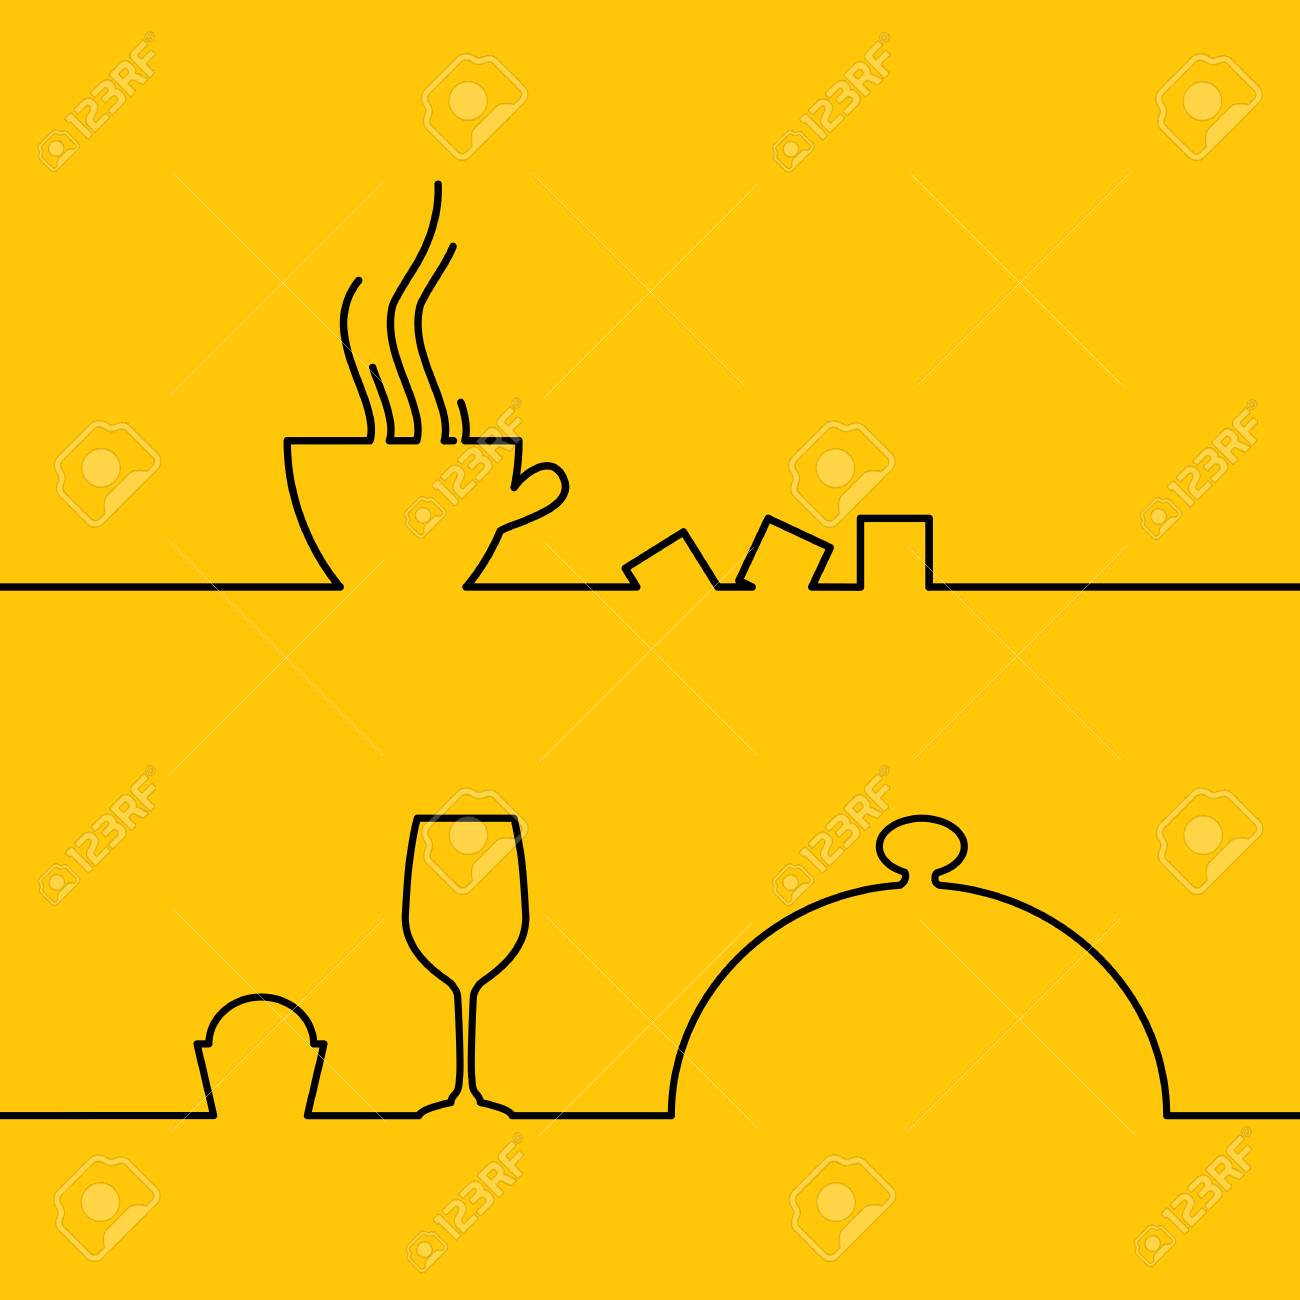 line design of coffee cup icon illustration template design